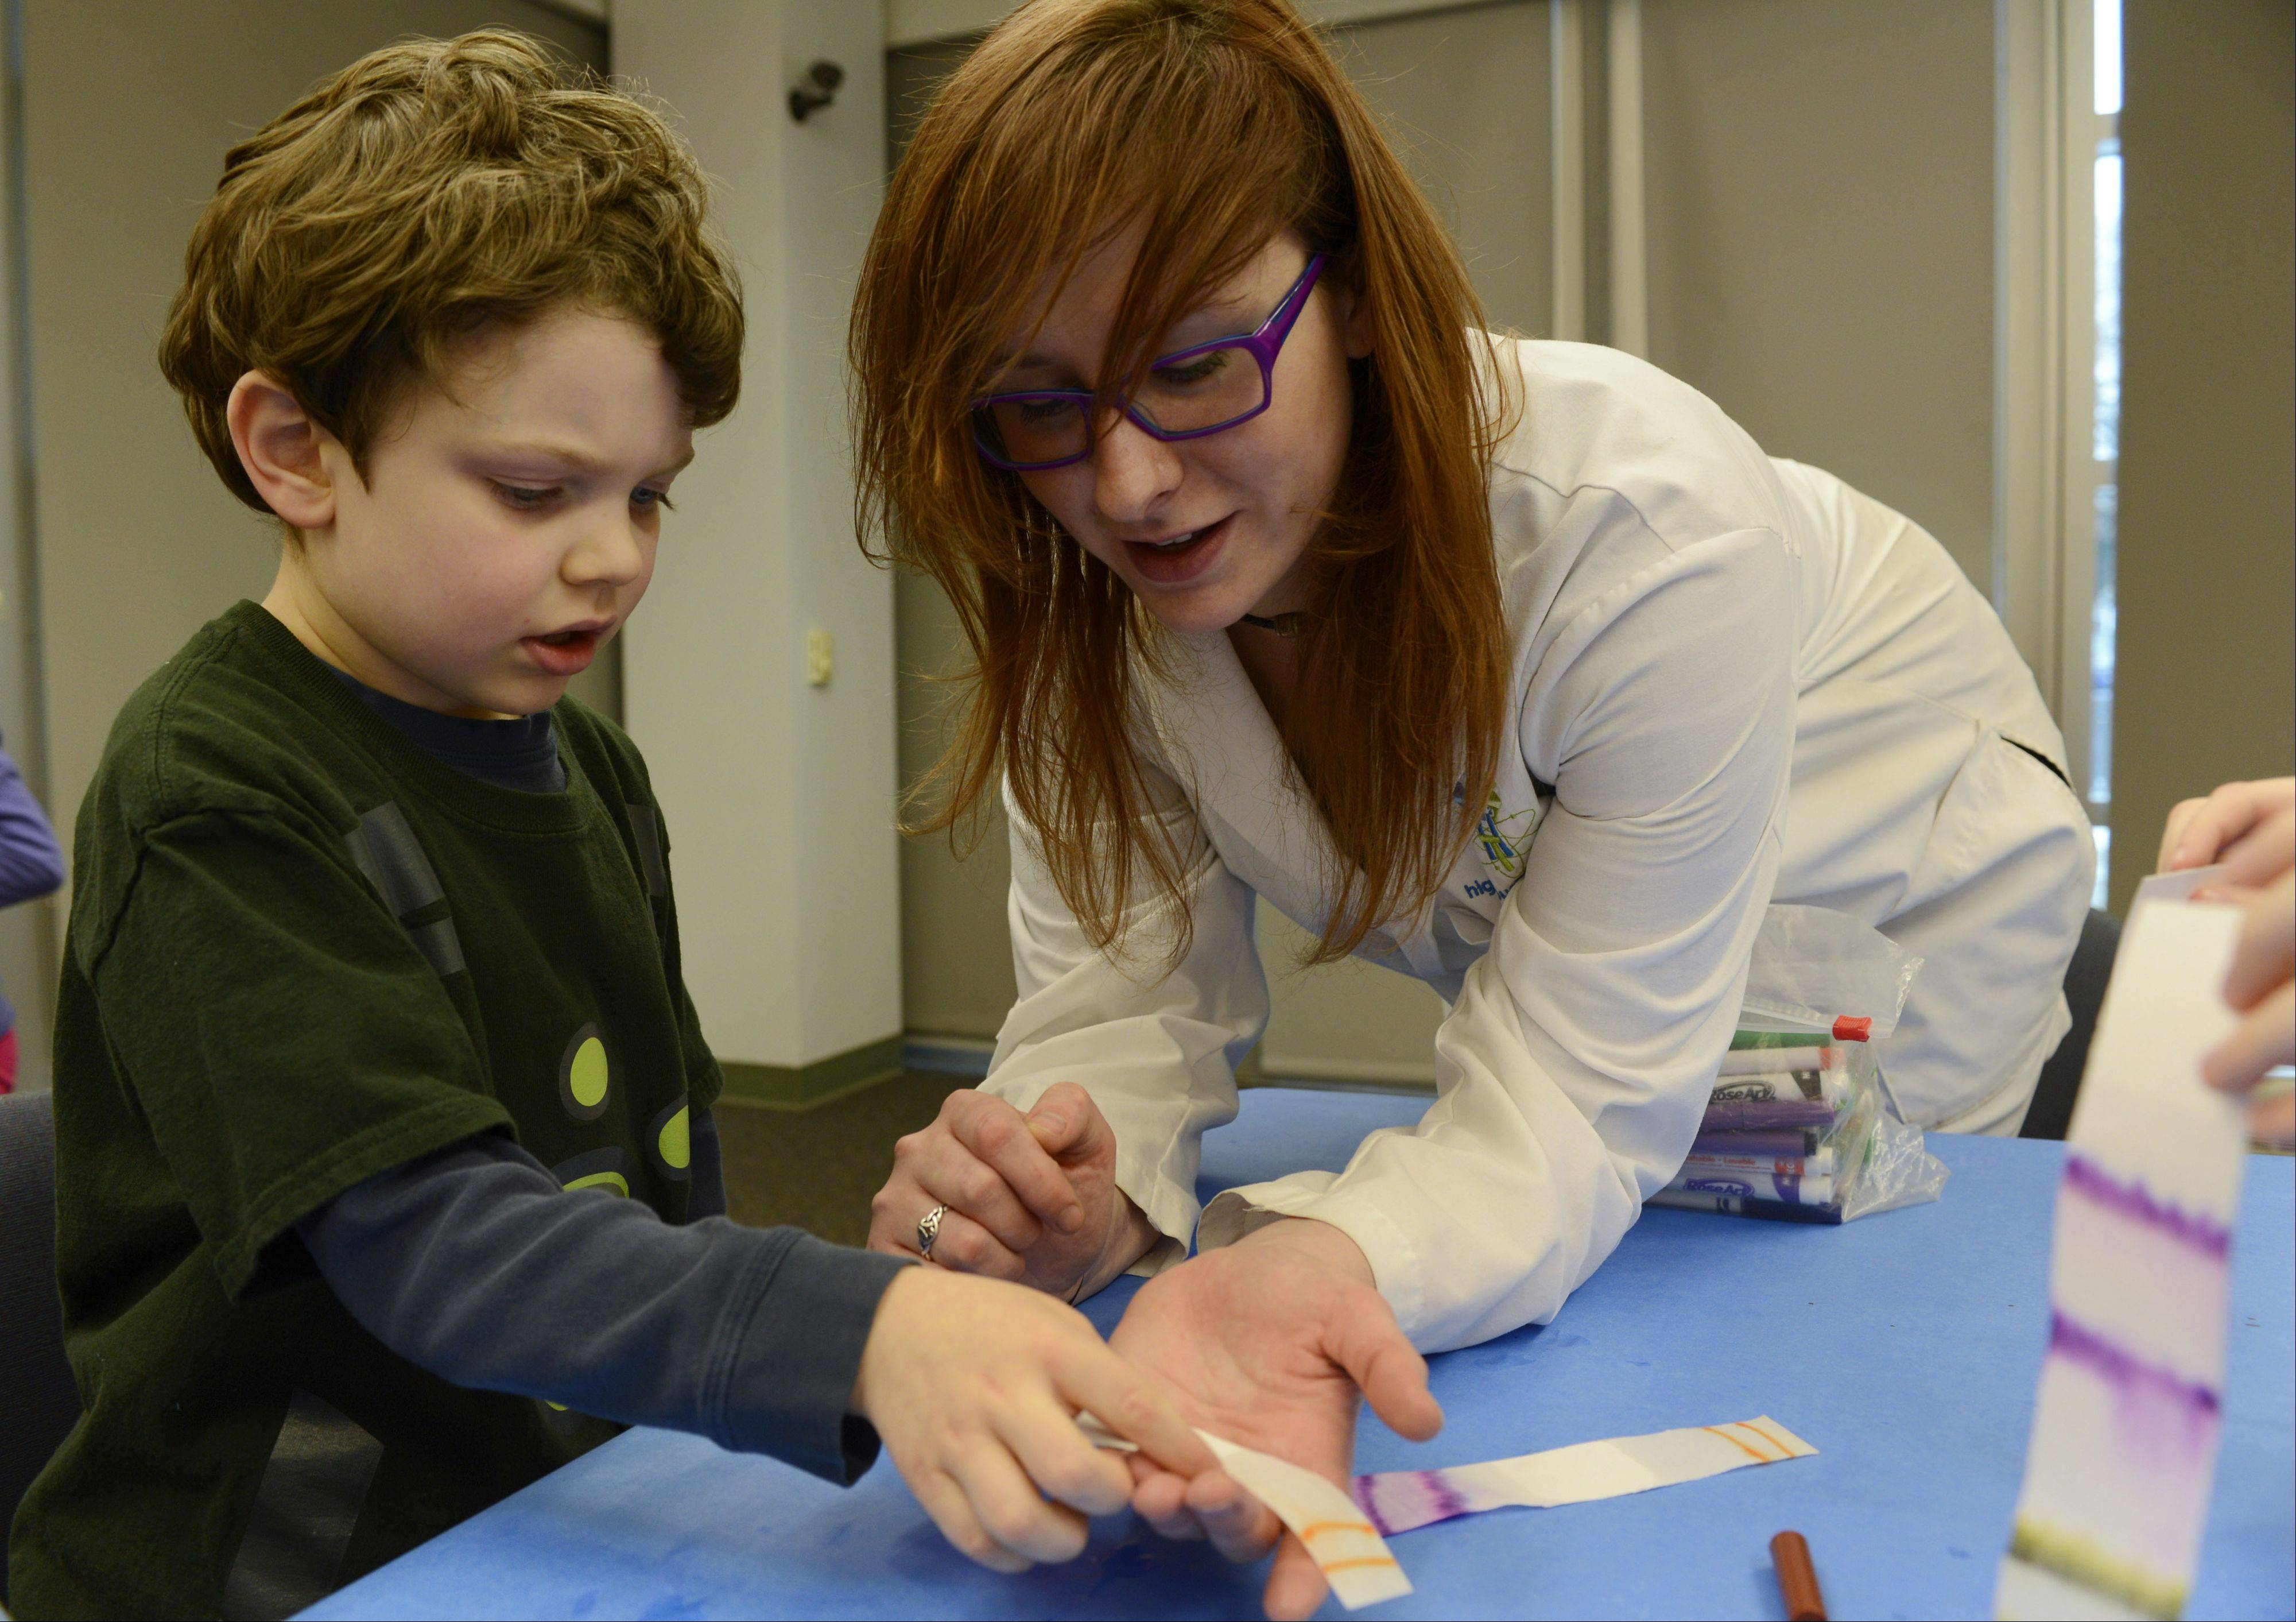 JOE LEWNARD/jlewnard@dailyherald.com Collin Narens, 6, of Wheeling learns about chromatography and capillary action from Jenn Biela during a �Chemistry Fun� program Saturday at the Indian Trails Library District in Wheeling.